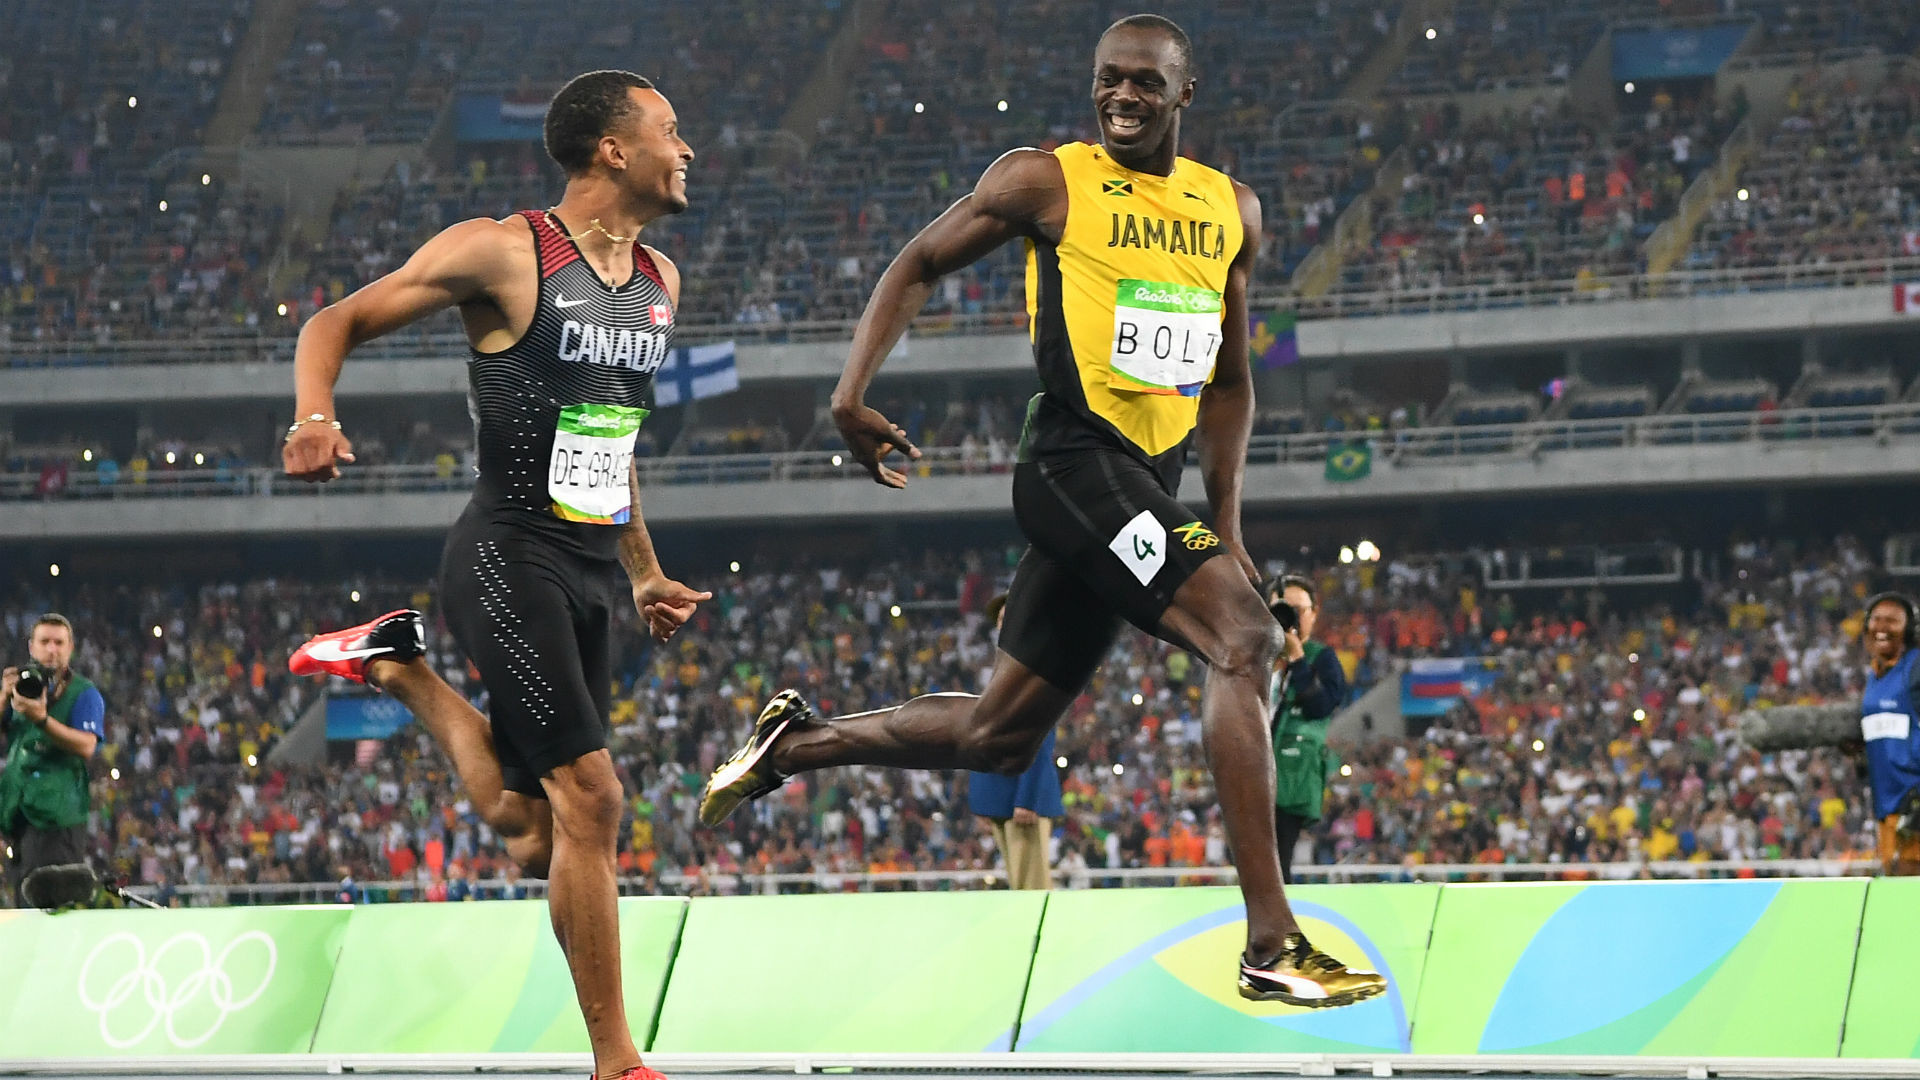 1920x1080 In the semifinals of the 200, de Grasse was beating Bolt until Bolt jetted  through the final third of the race, then turned to de Grasse and gave him  a wave ...